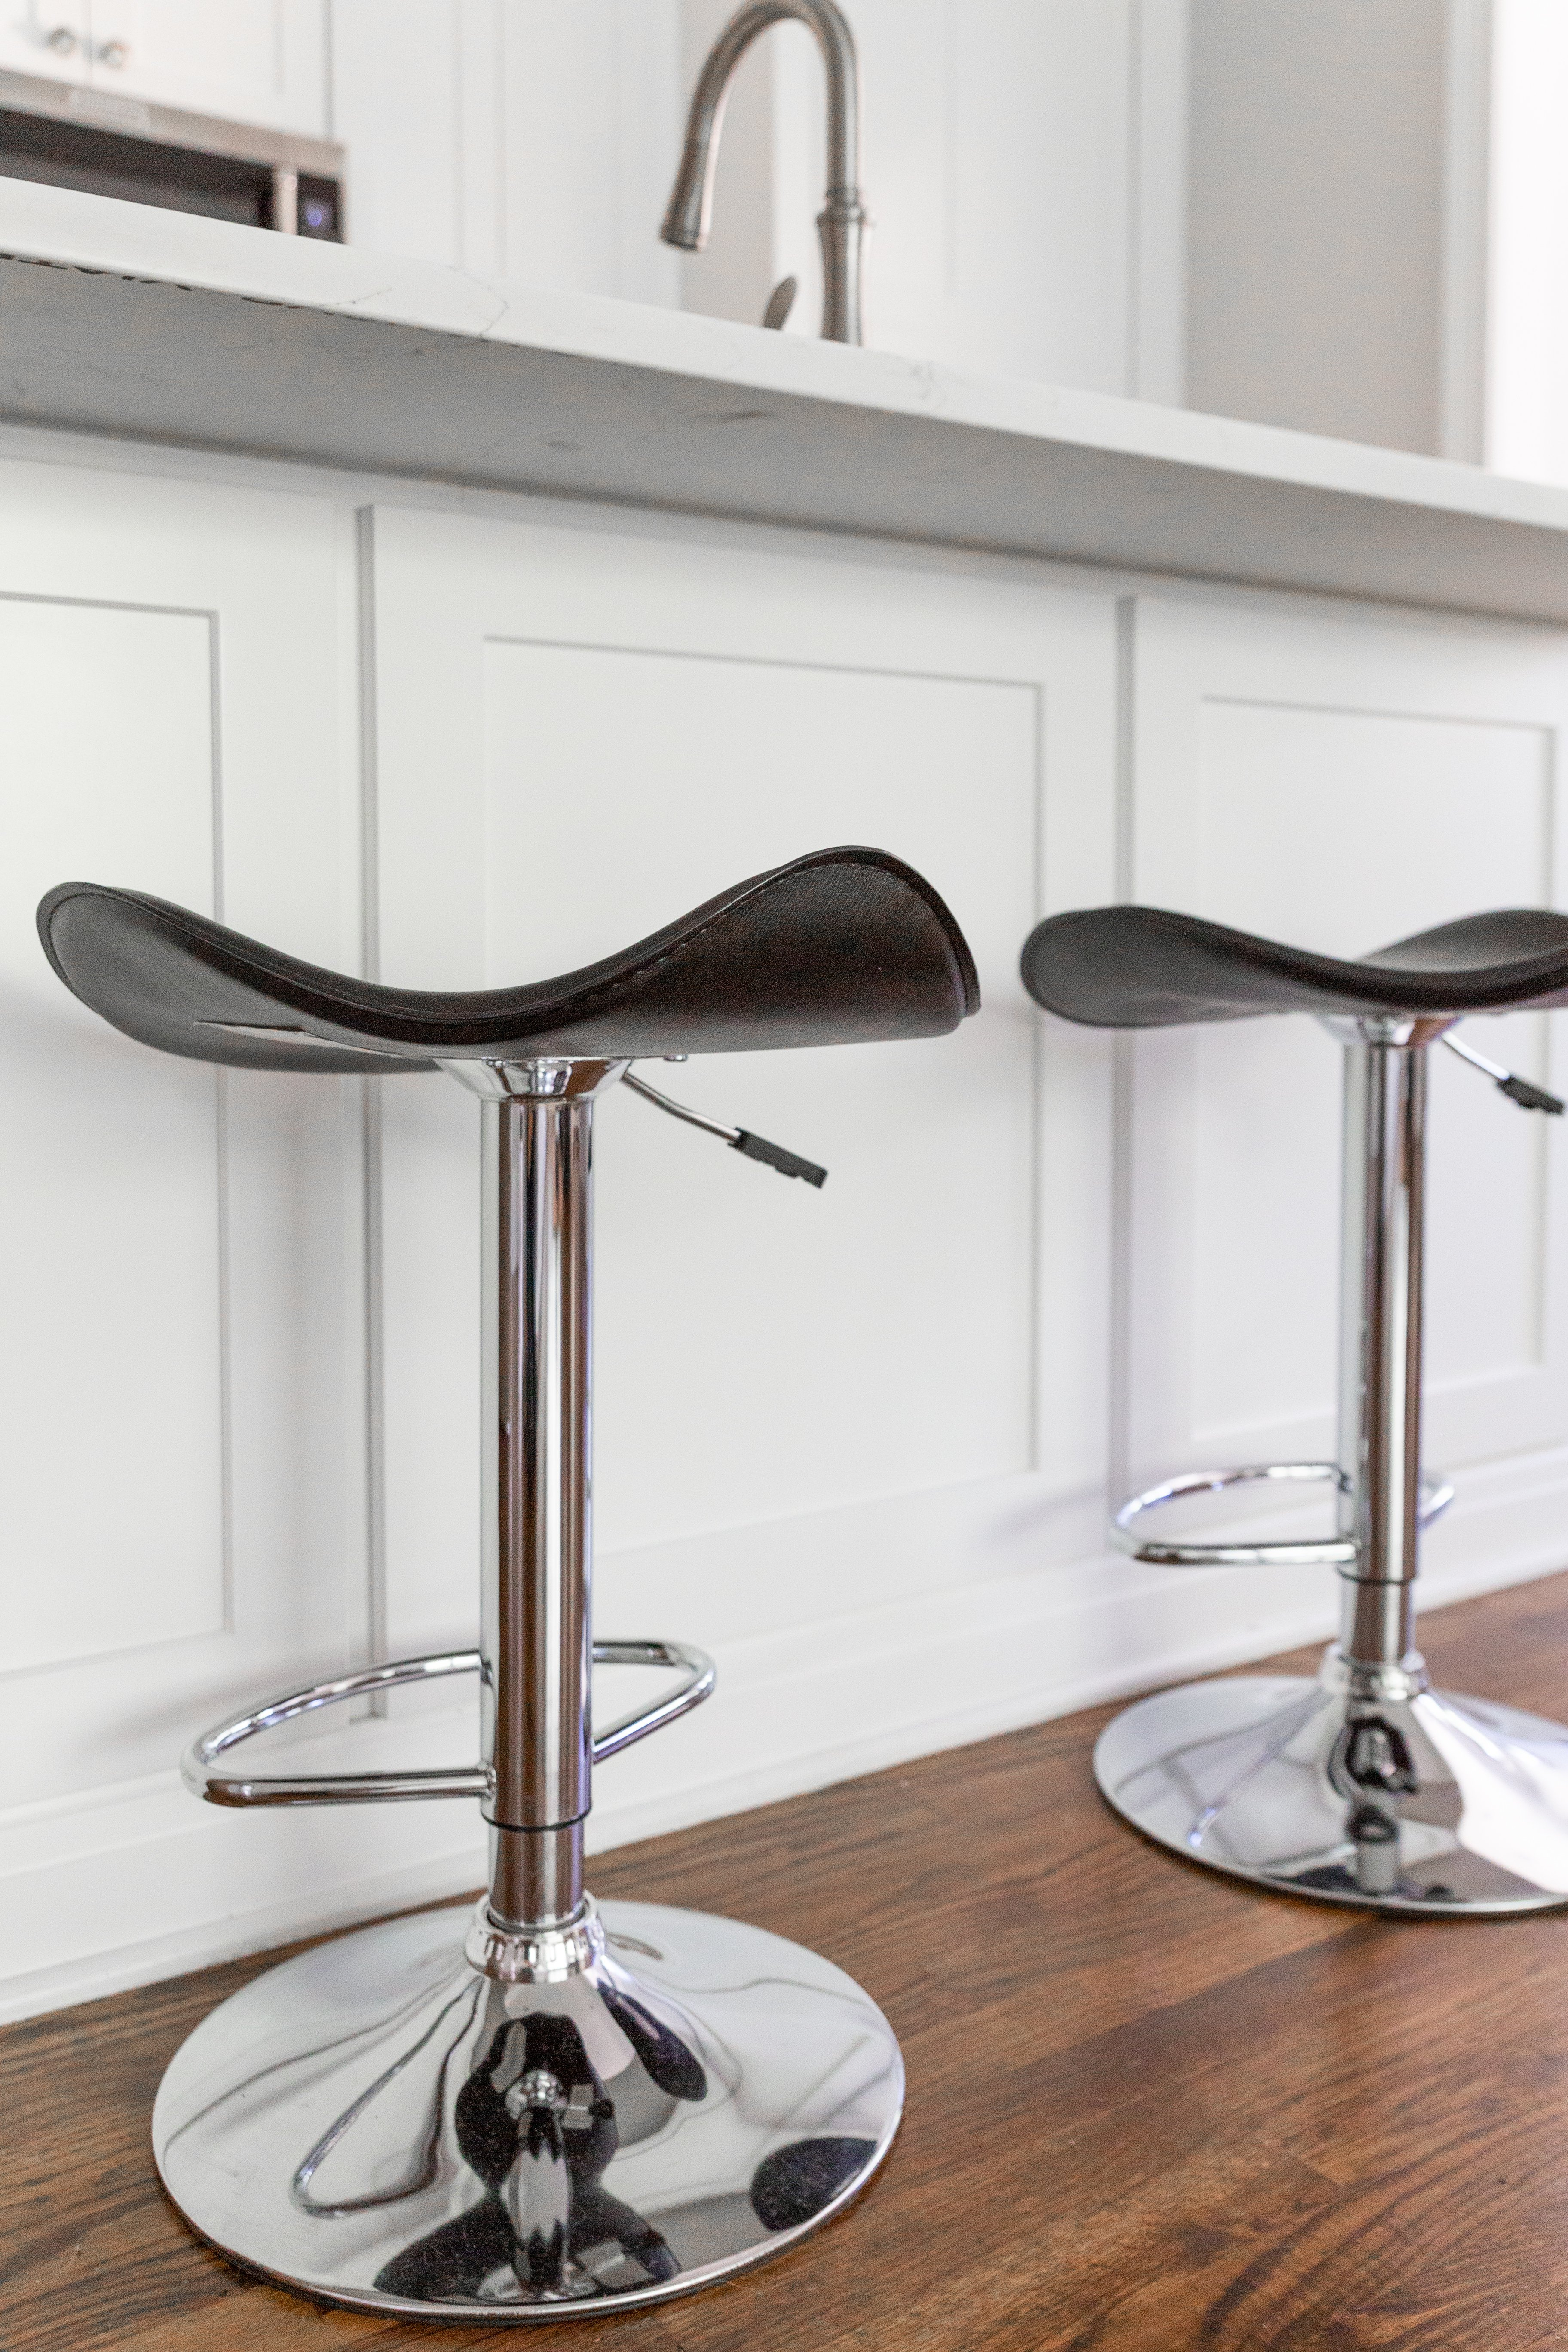 15 counter stools Sinclair Carriage House-25.jpg